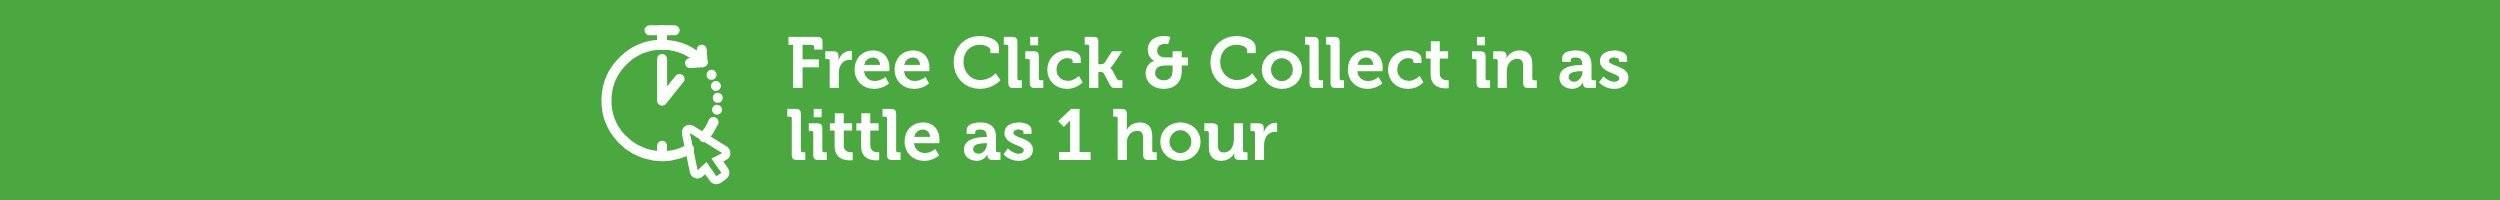 Click & Collect - 1 hour